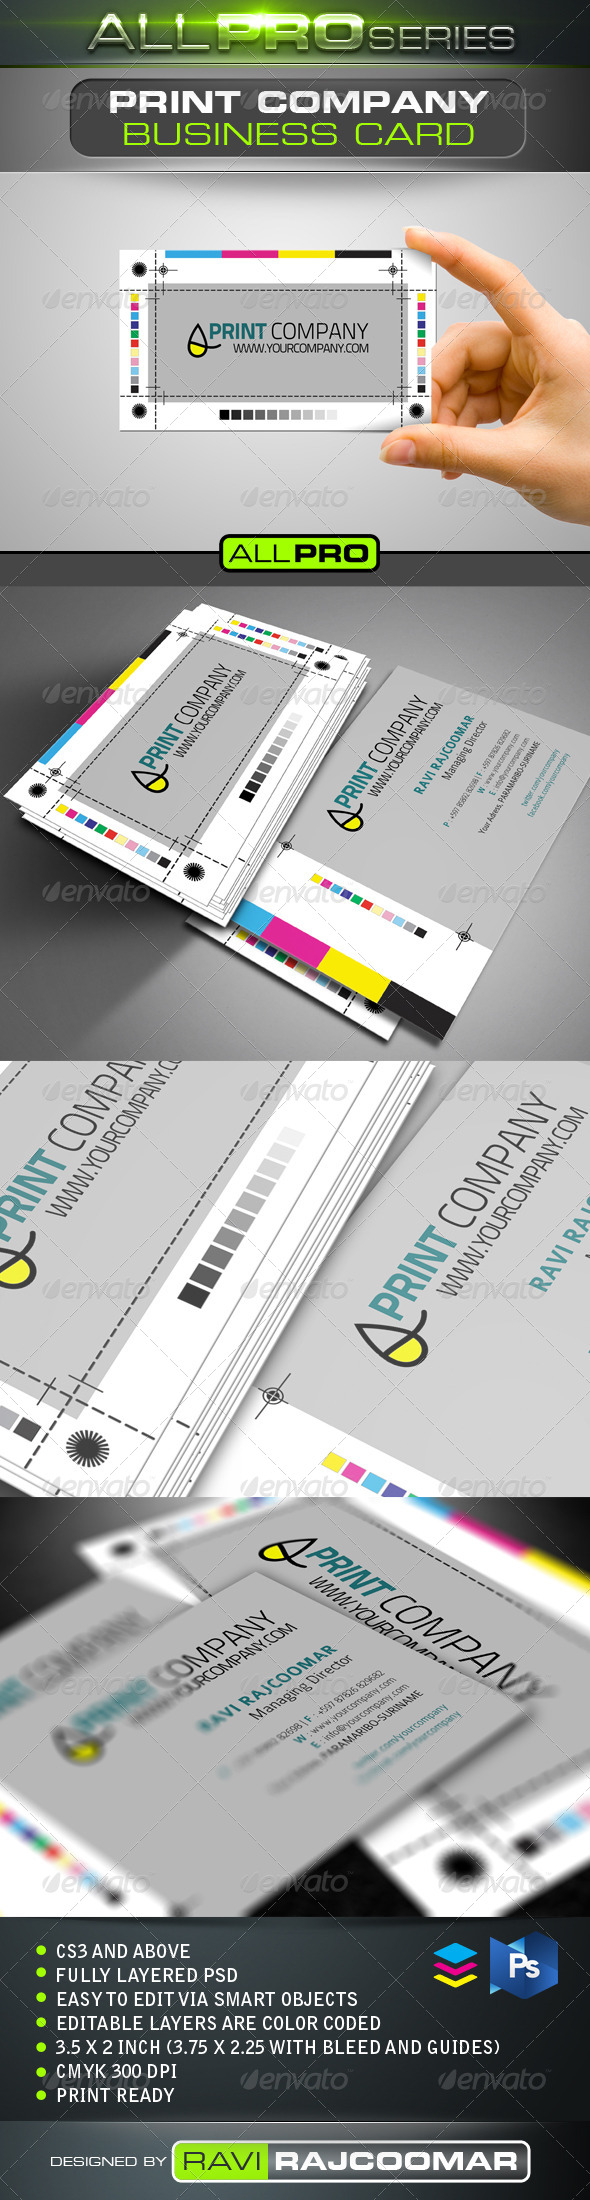 Print Company Business Card - Business Cards Print Templates